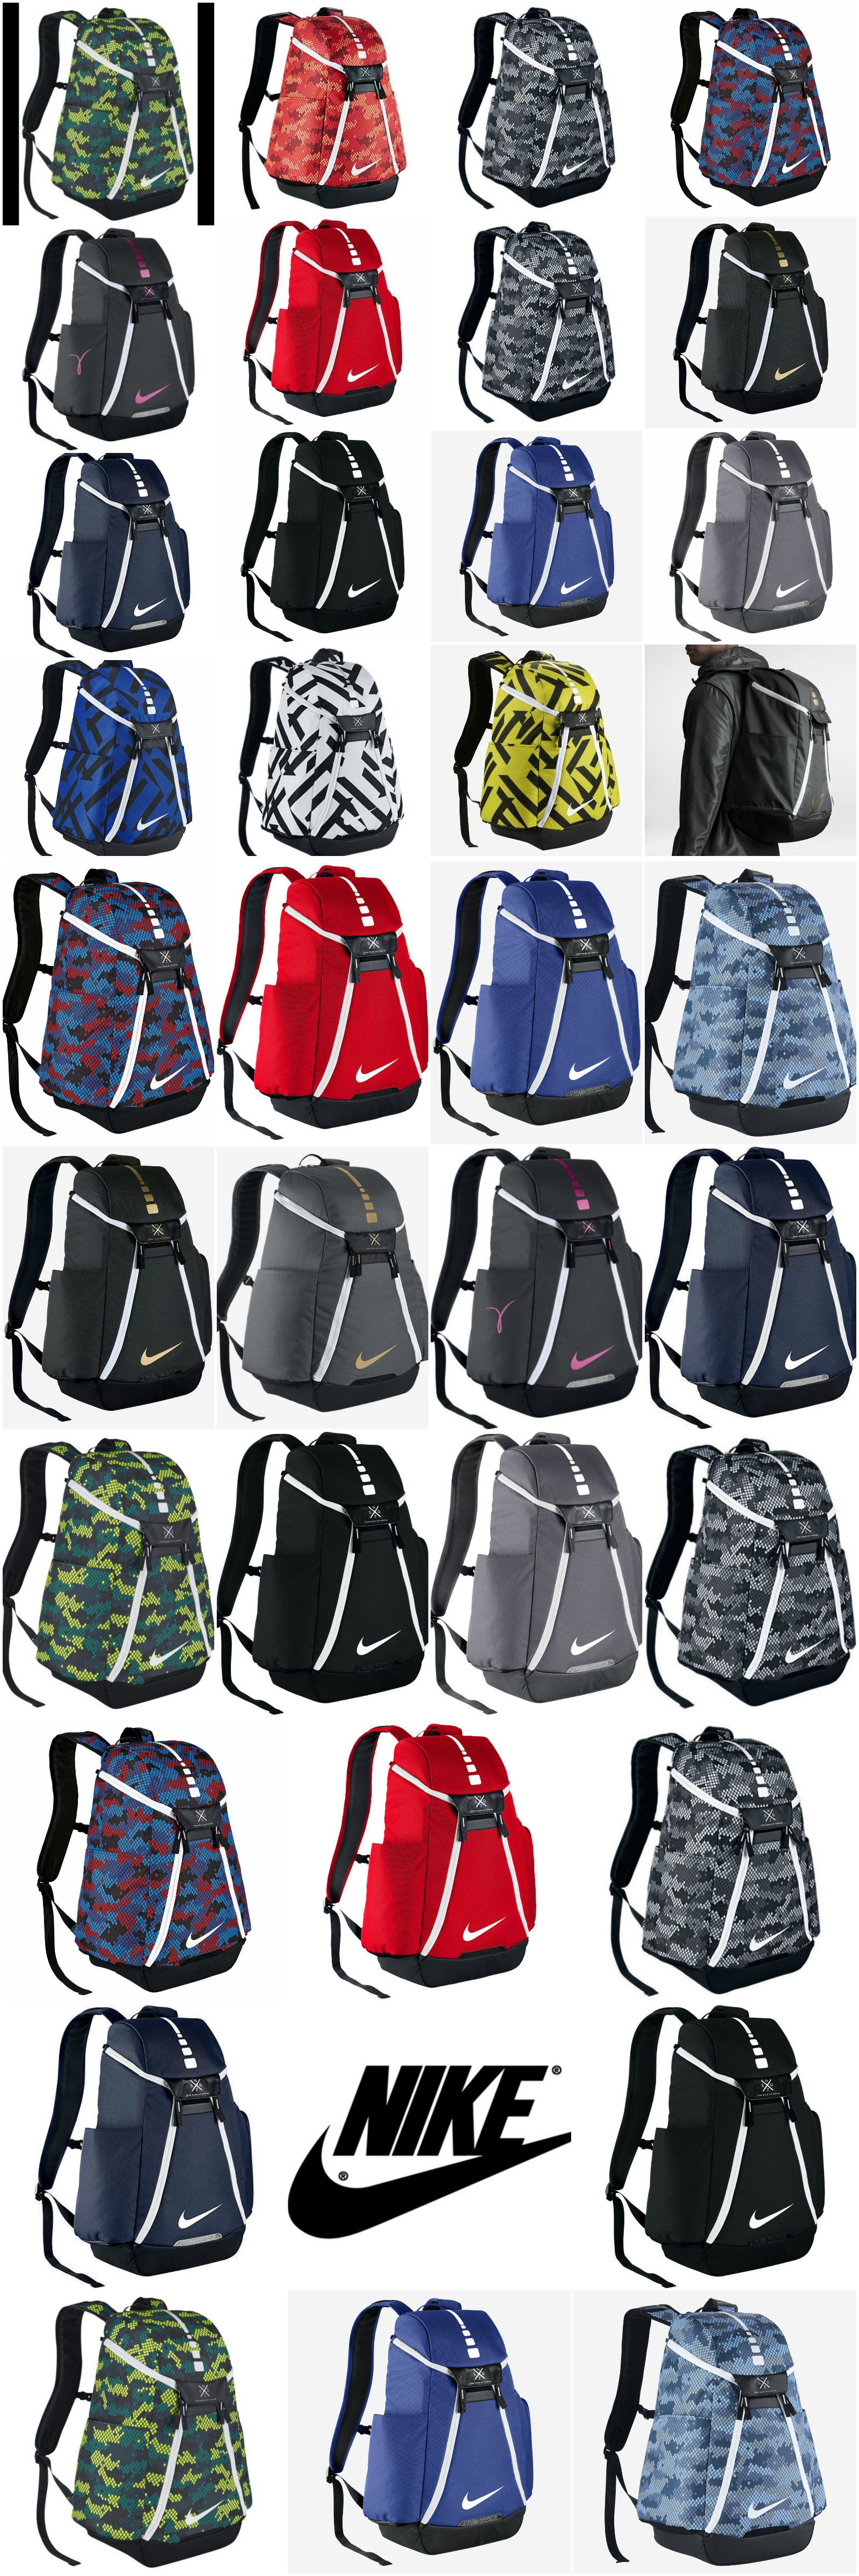 half off 9c4f6 82097 Bags and Backpacks 163537  Nike Hoops Elite Max Air Team 2.0 Graphic  Basketball Backpack Ba5259 Ba5260 New -  BUY IT NOW ONLY   69.75 on eBay!